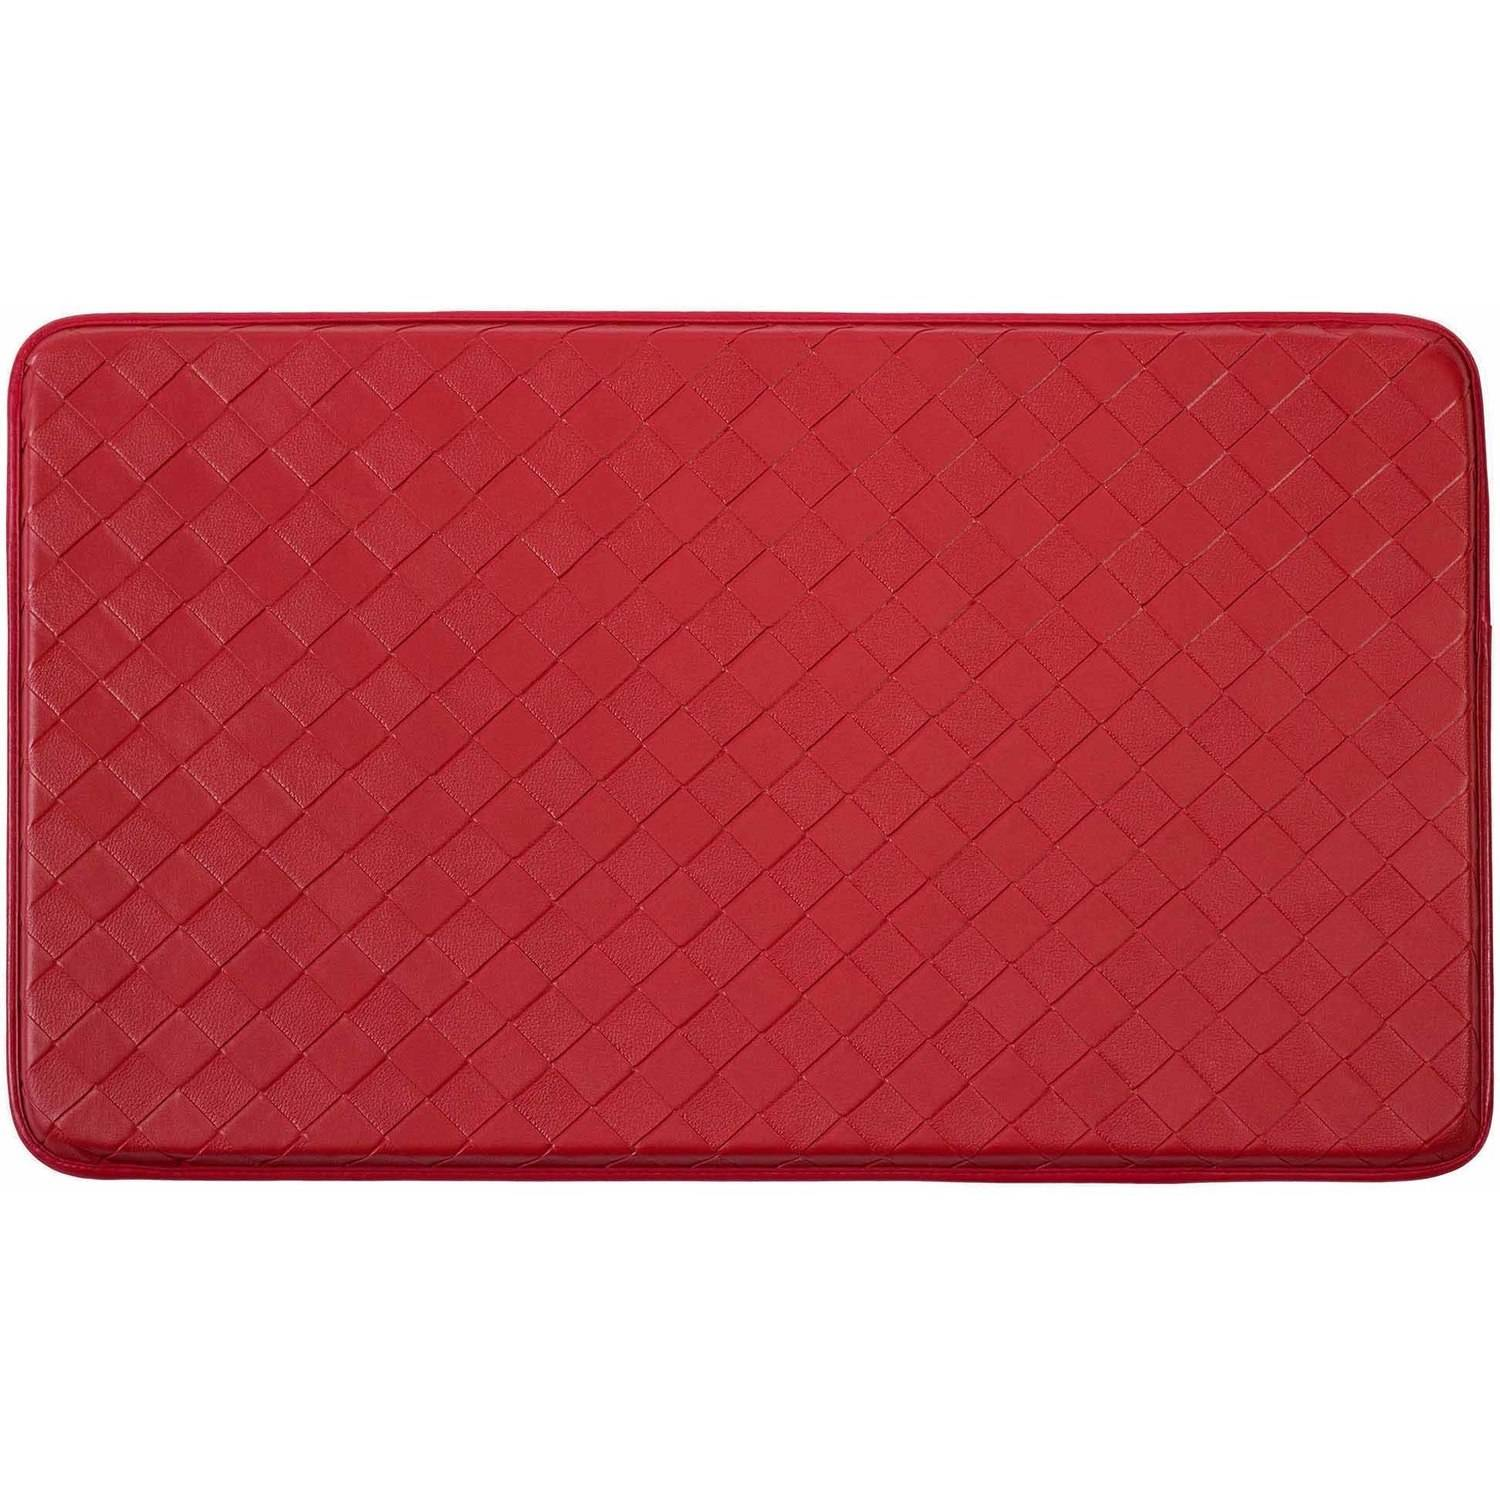 Chef Gear Faux-Leather Diamond Weave 24 x 36 in. Comfort Chef Mat